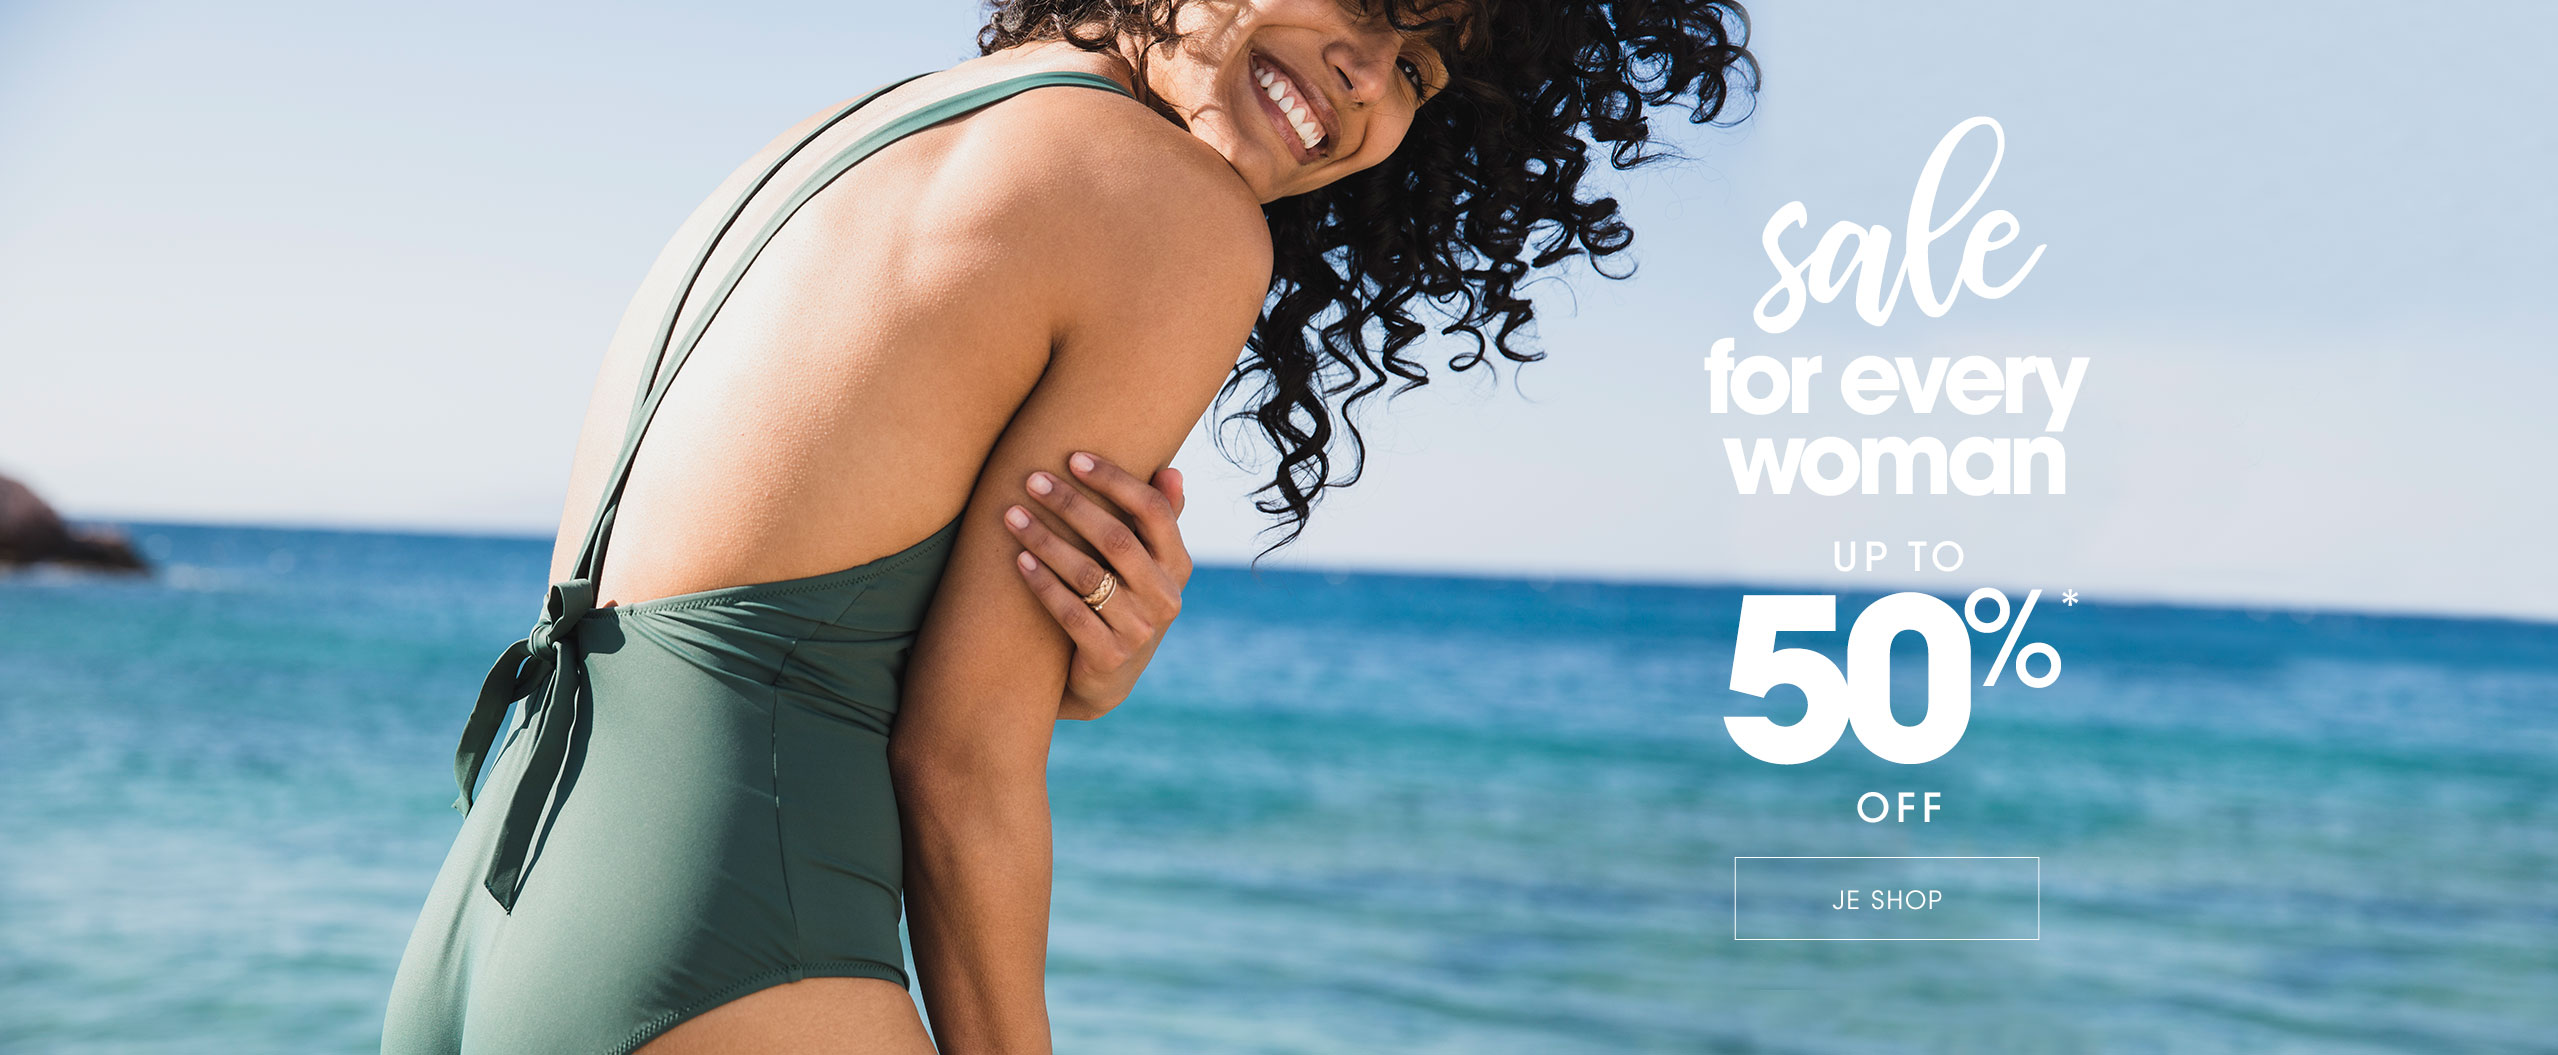 Sale for every woman up to 50% off